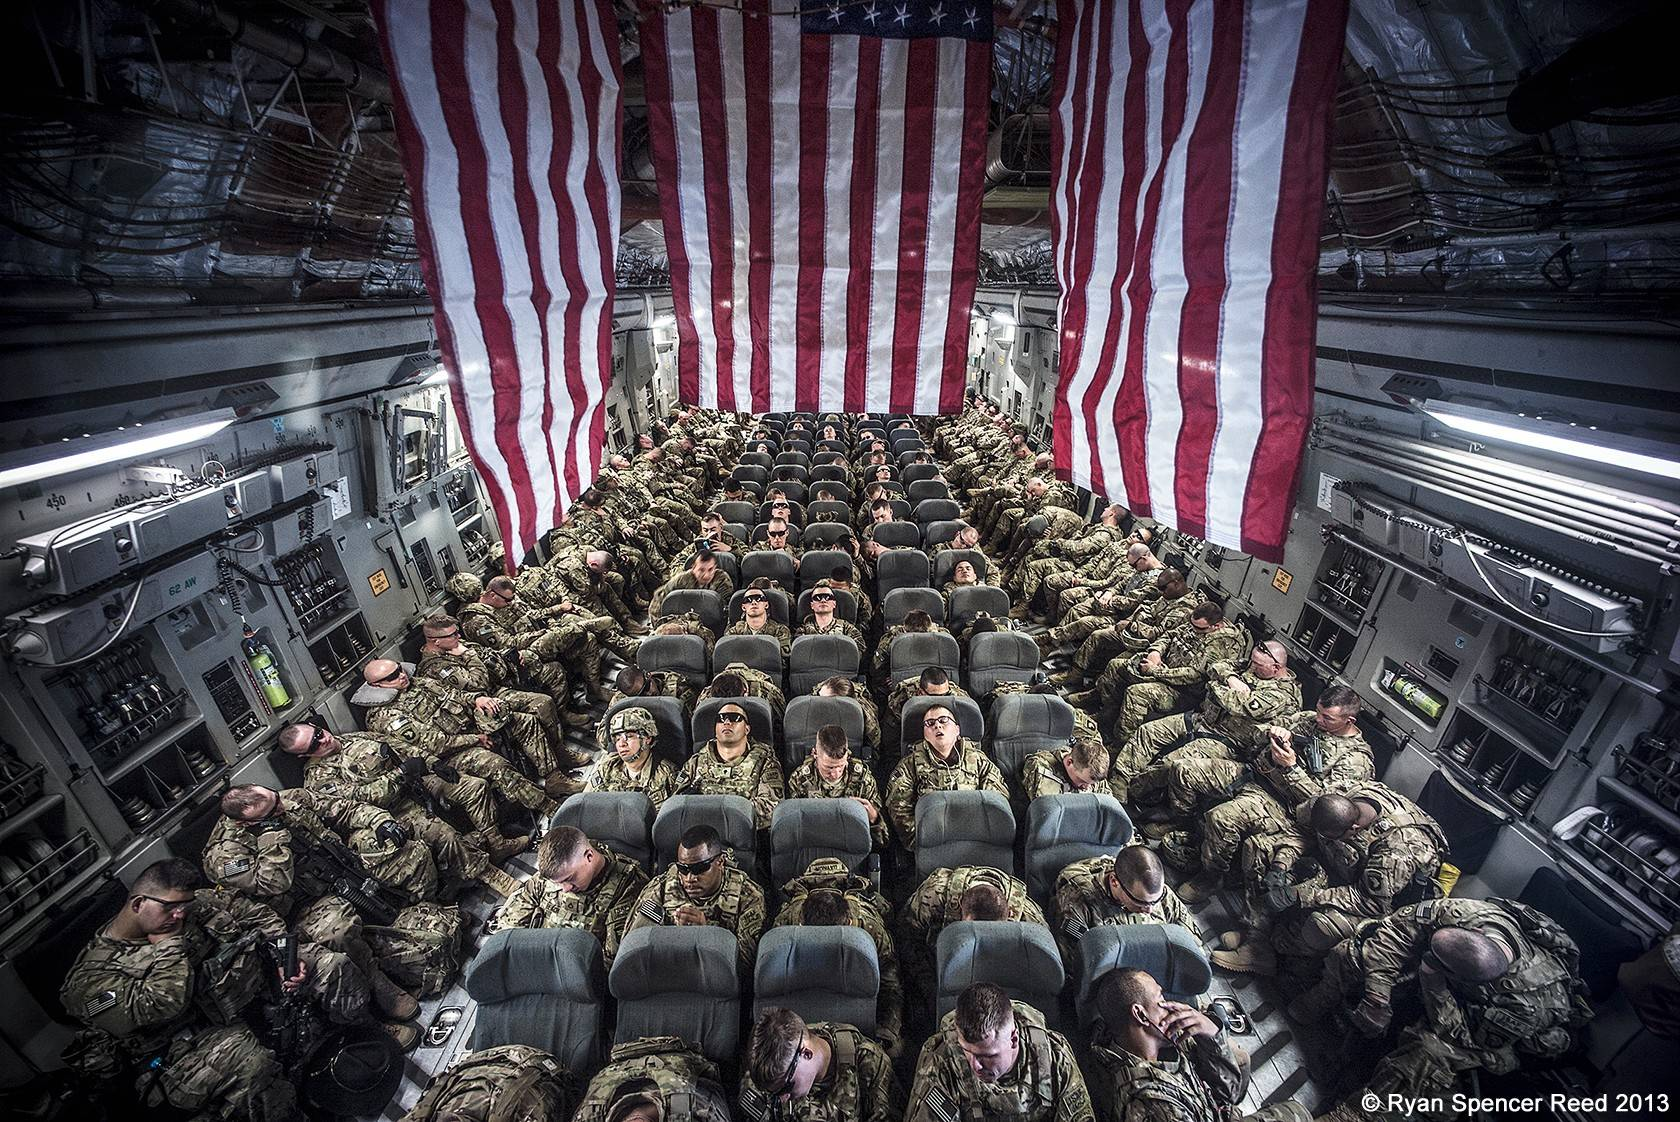 The photography of Ryan Spencer Reed, who was embedded with the 101st Airborne Band of Brothers in Afghanistan, will be on display Sept. 11 to Nov. 11 at Urban Edge Gallery in downtown Waukegan as part of the Waukegan Arts Council's ArtWise series.